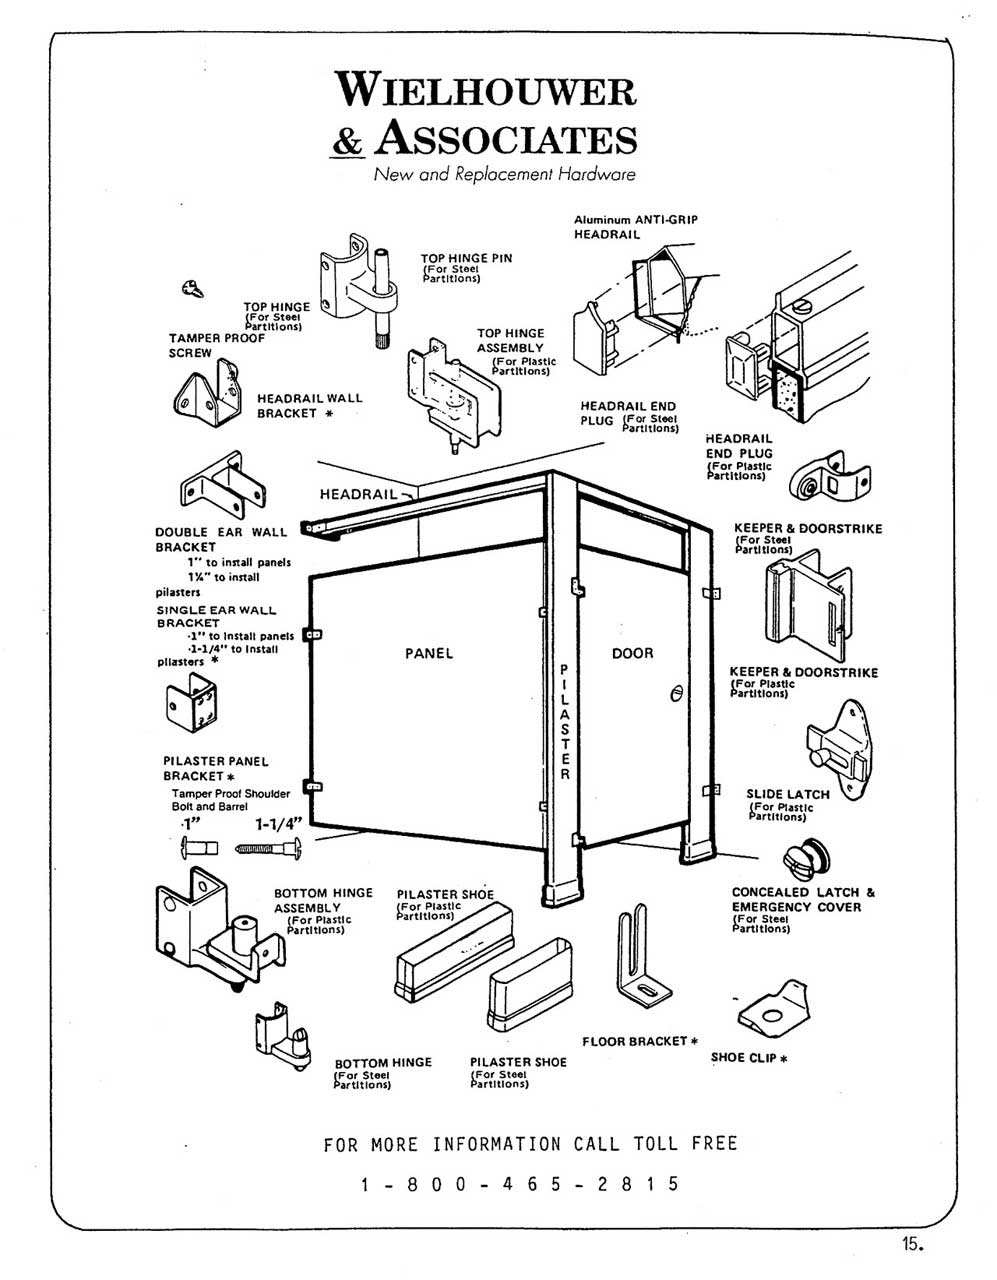 toilet repair parts diagram 2002 mustang wiring for stereo partitions - identification | wielhouwer replacement hardware specialists